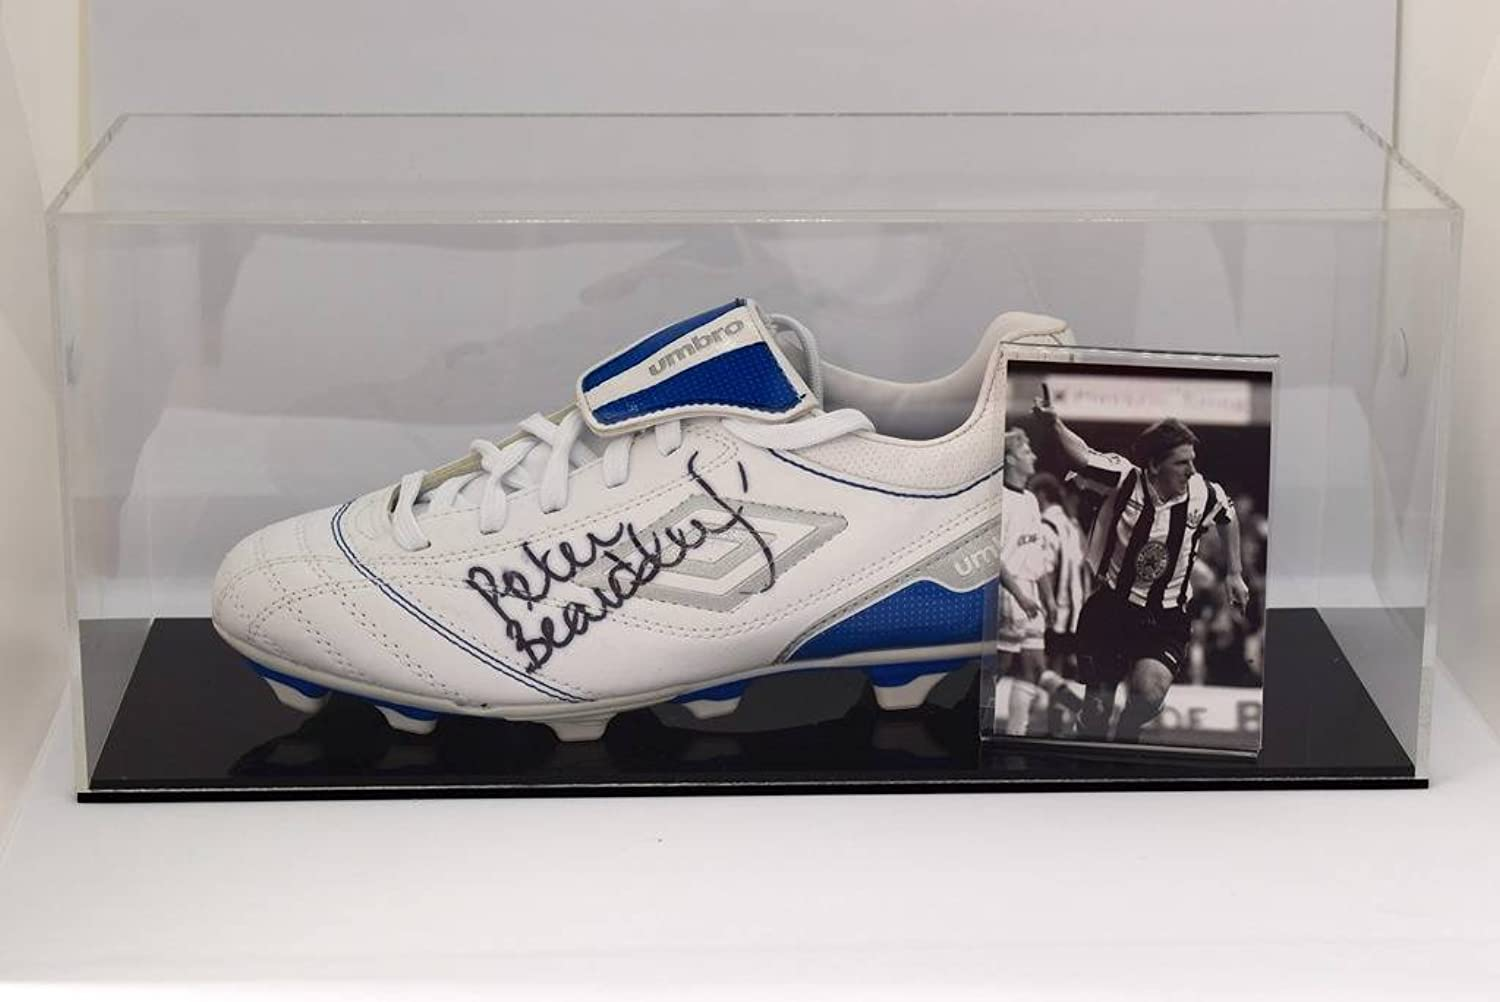 Sportagraphs Peter orsodsley Signed Autograph Footbtutti avvio Display Case nuovocastle COA